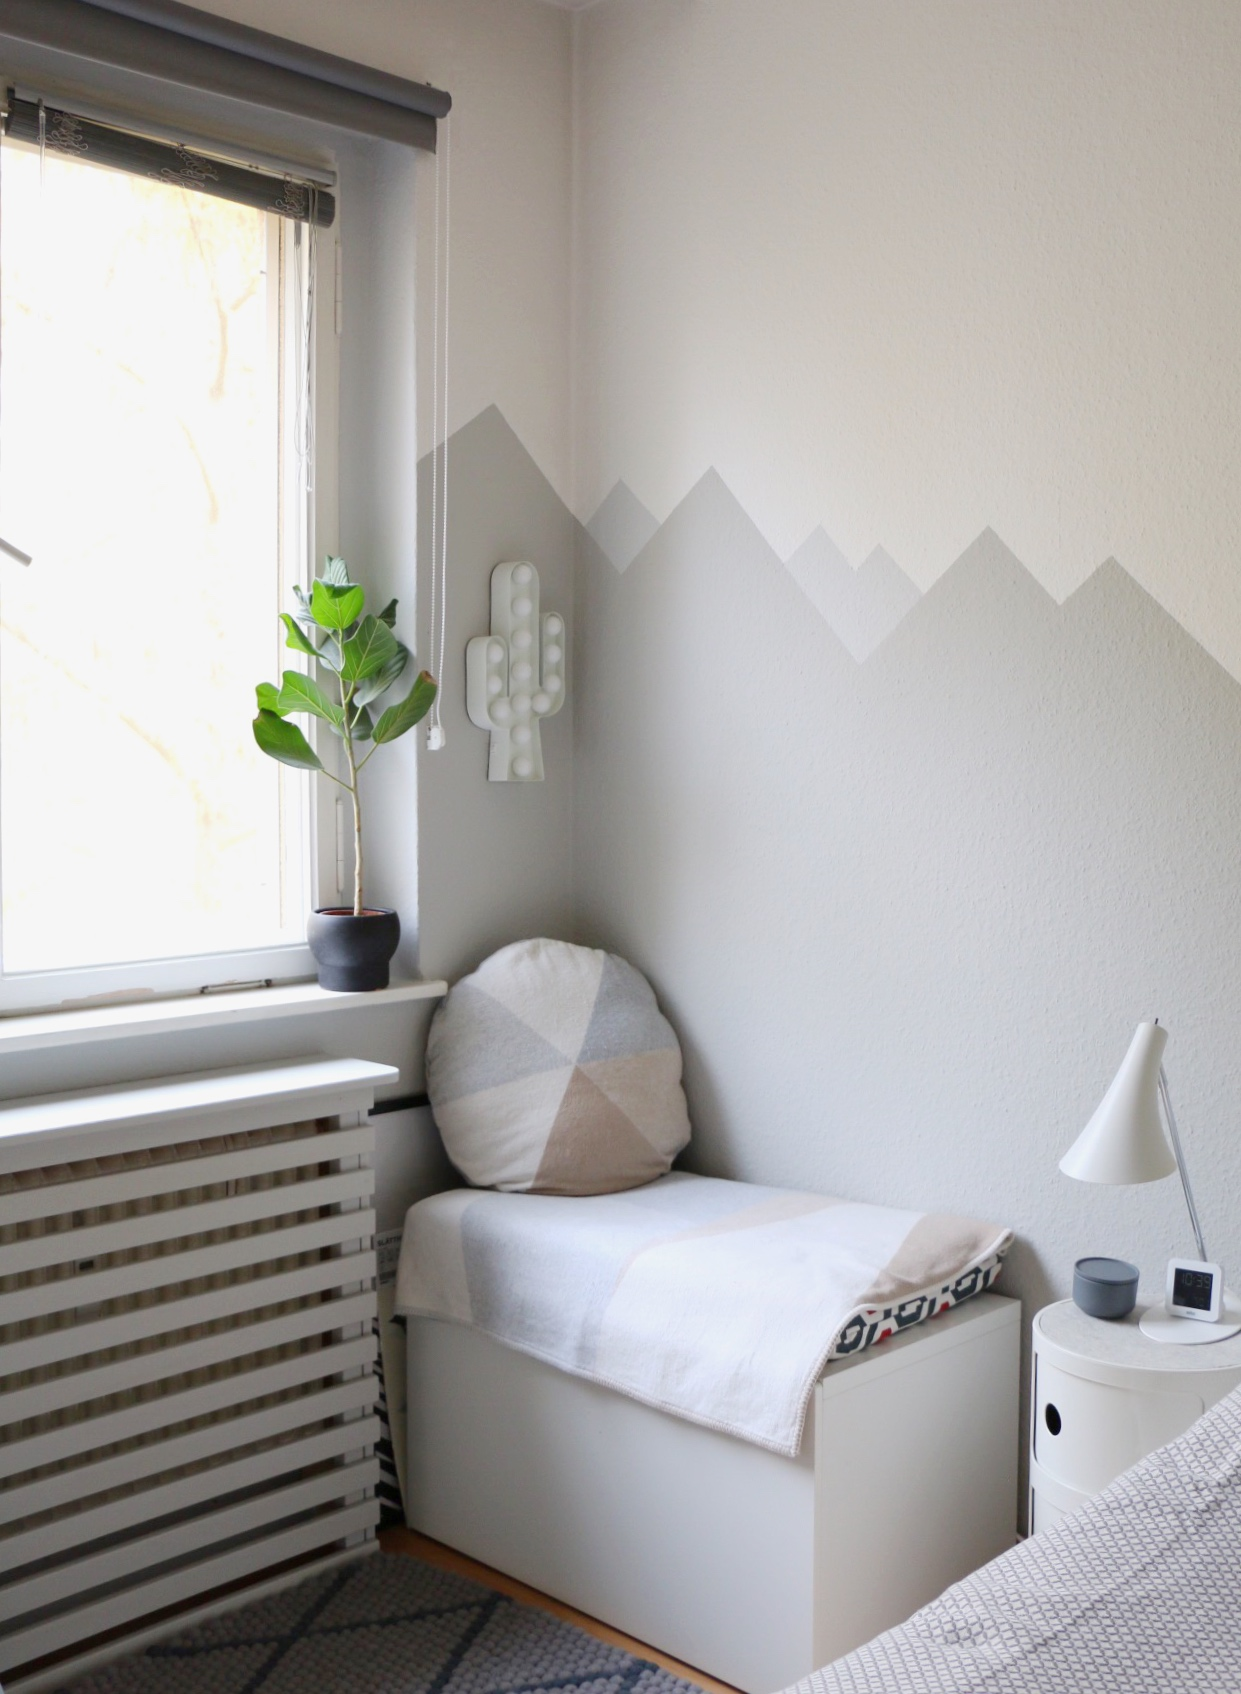 Mountain nursery wallpaint wandgestaltung im babyzimmer eat blog love - Kinderzimmer wandgestaltung ...